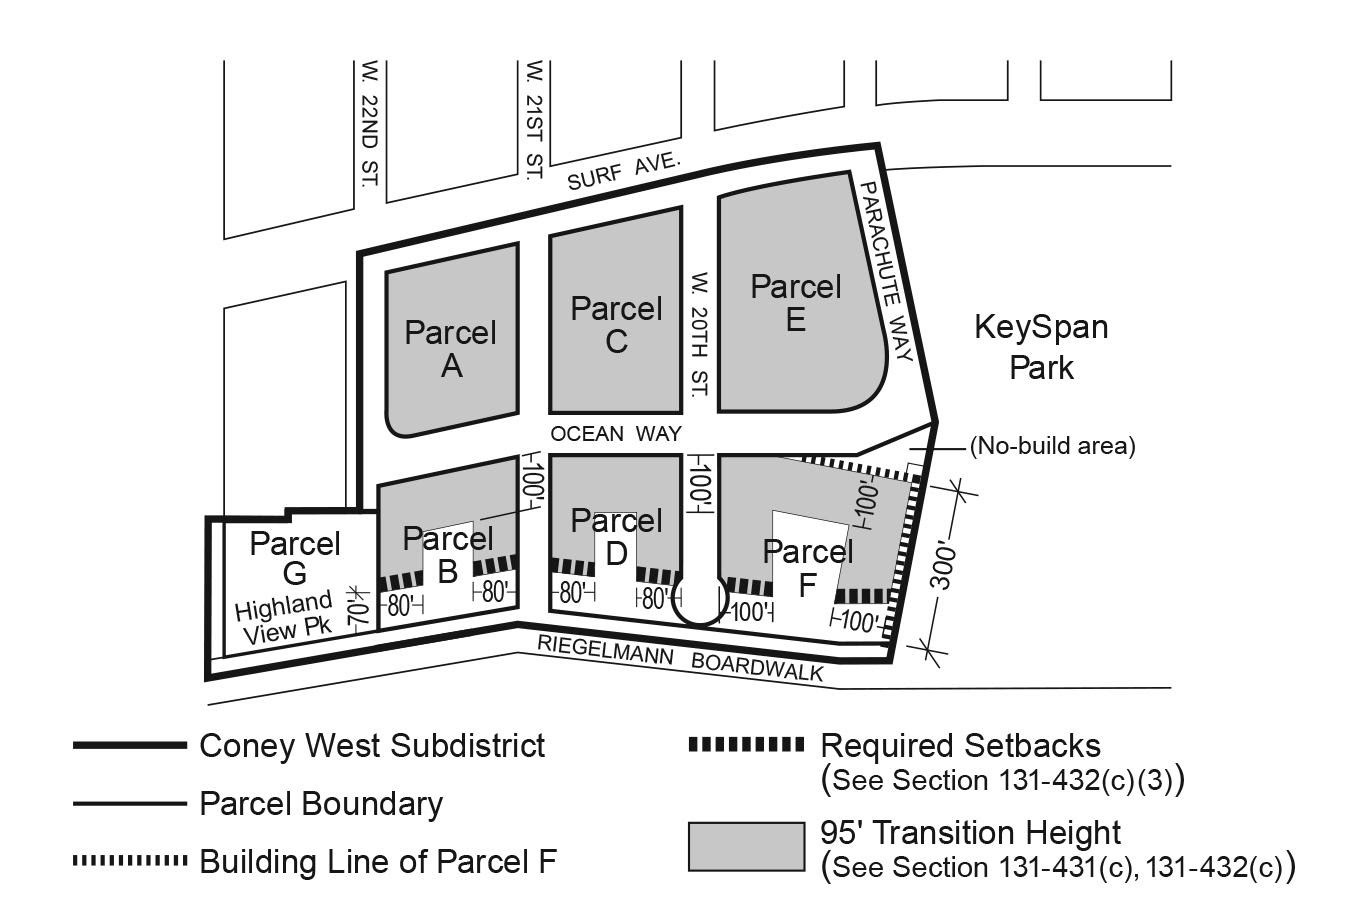 Zoning Resolutions Chapter 1: Special Coney Island District Appendix A.5